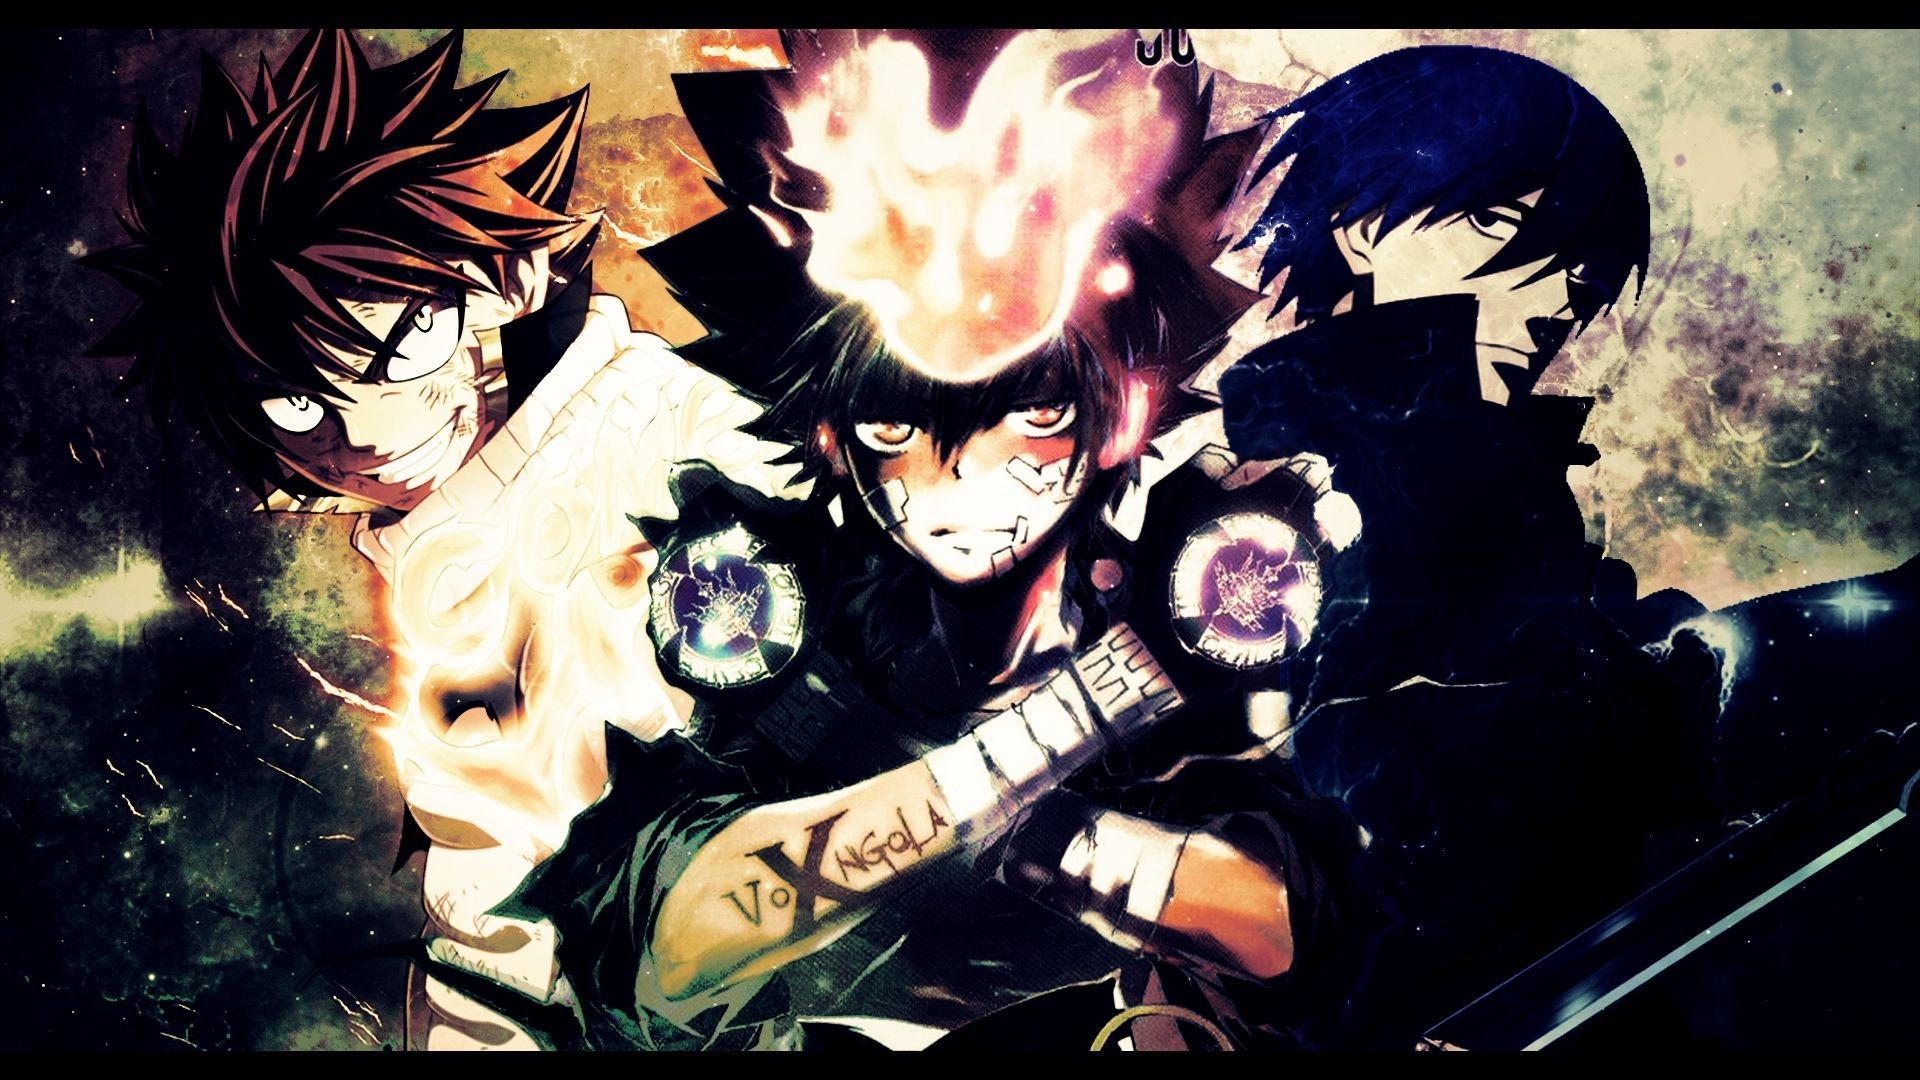 Crossover Wallpapers Backgrounds Wallpaper Abyss Jpg 1920x1080 Space Top Anime Pictures